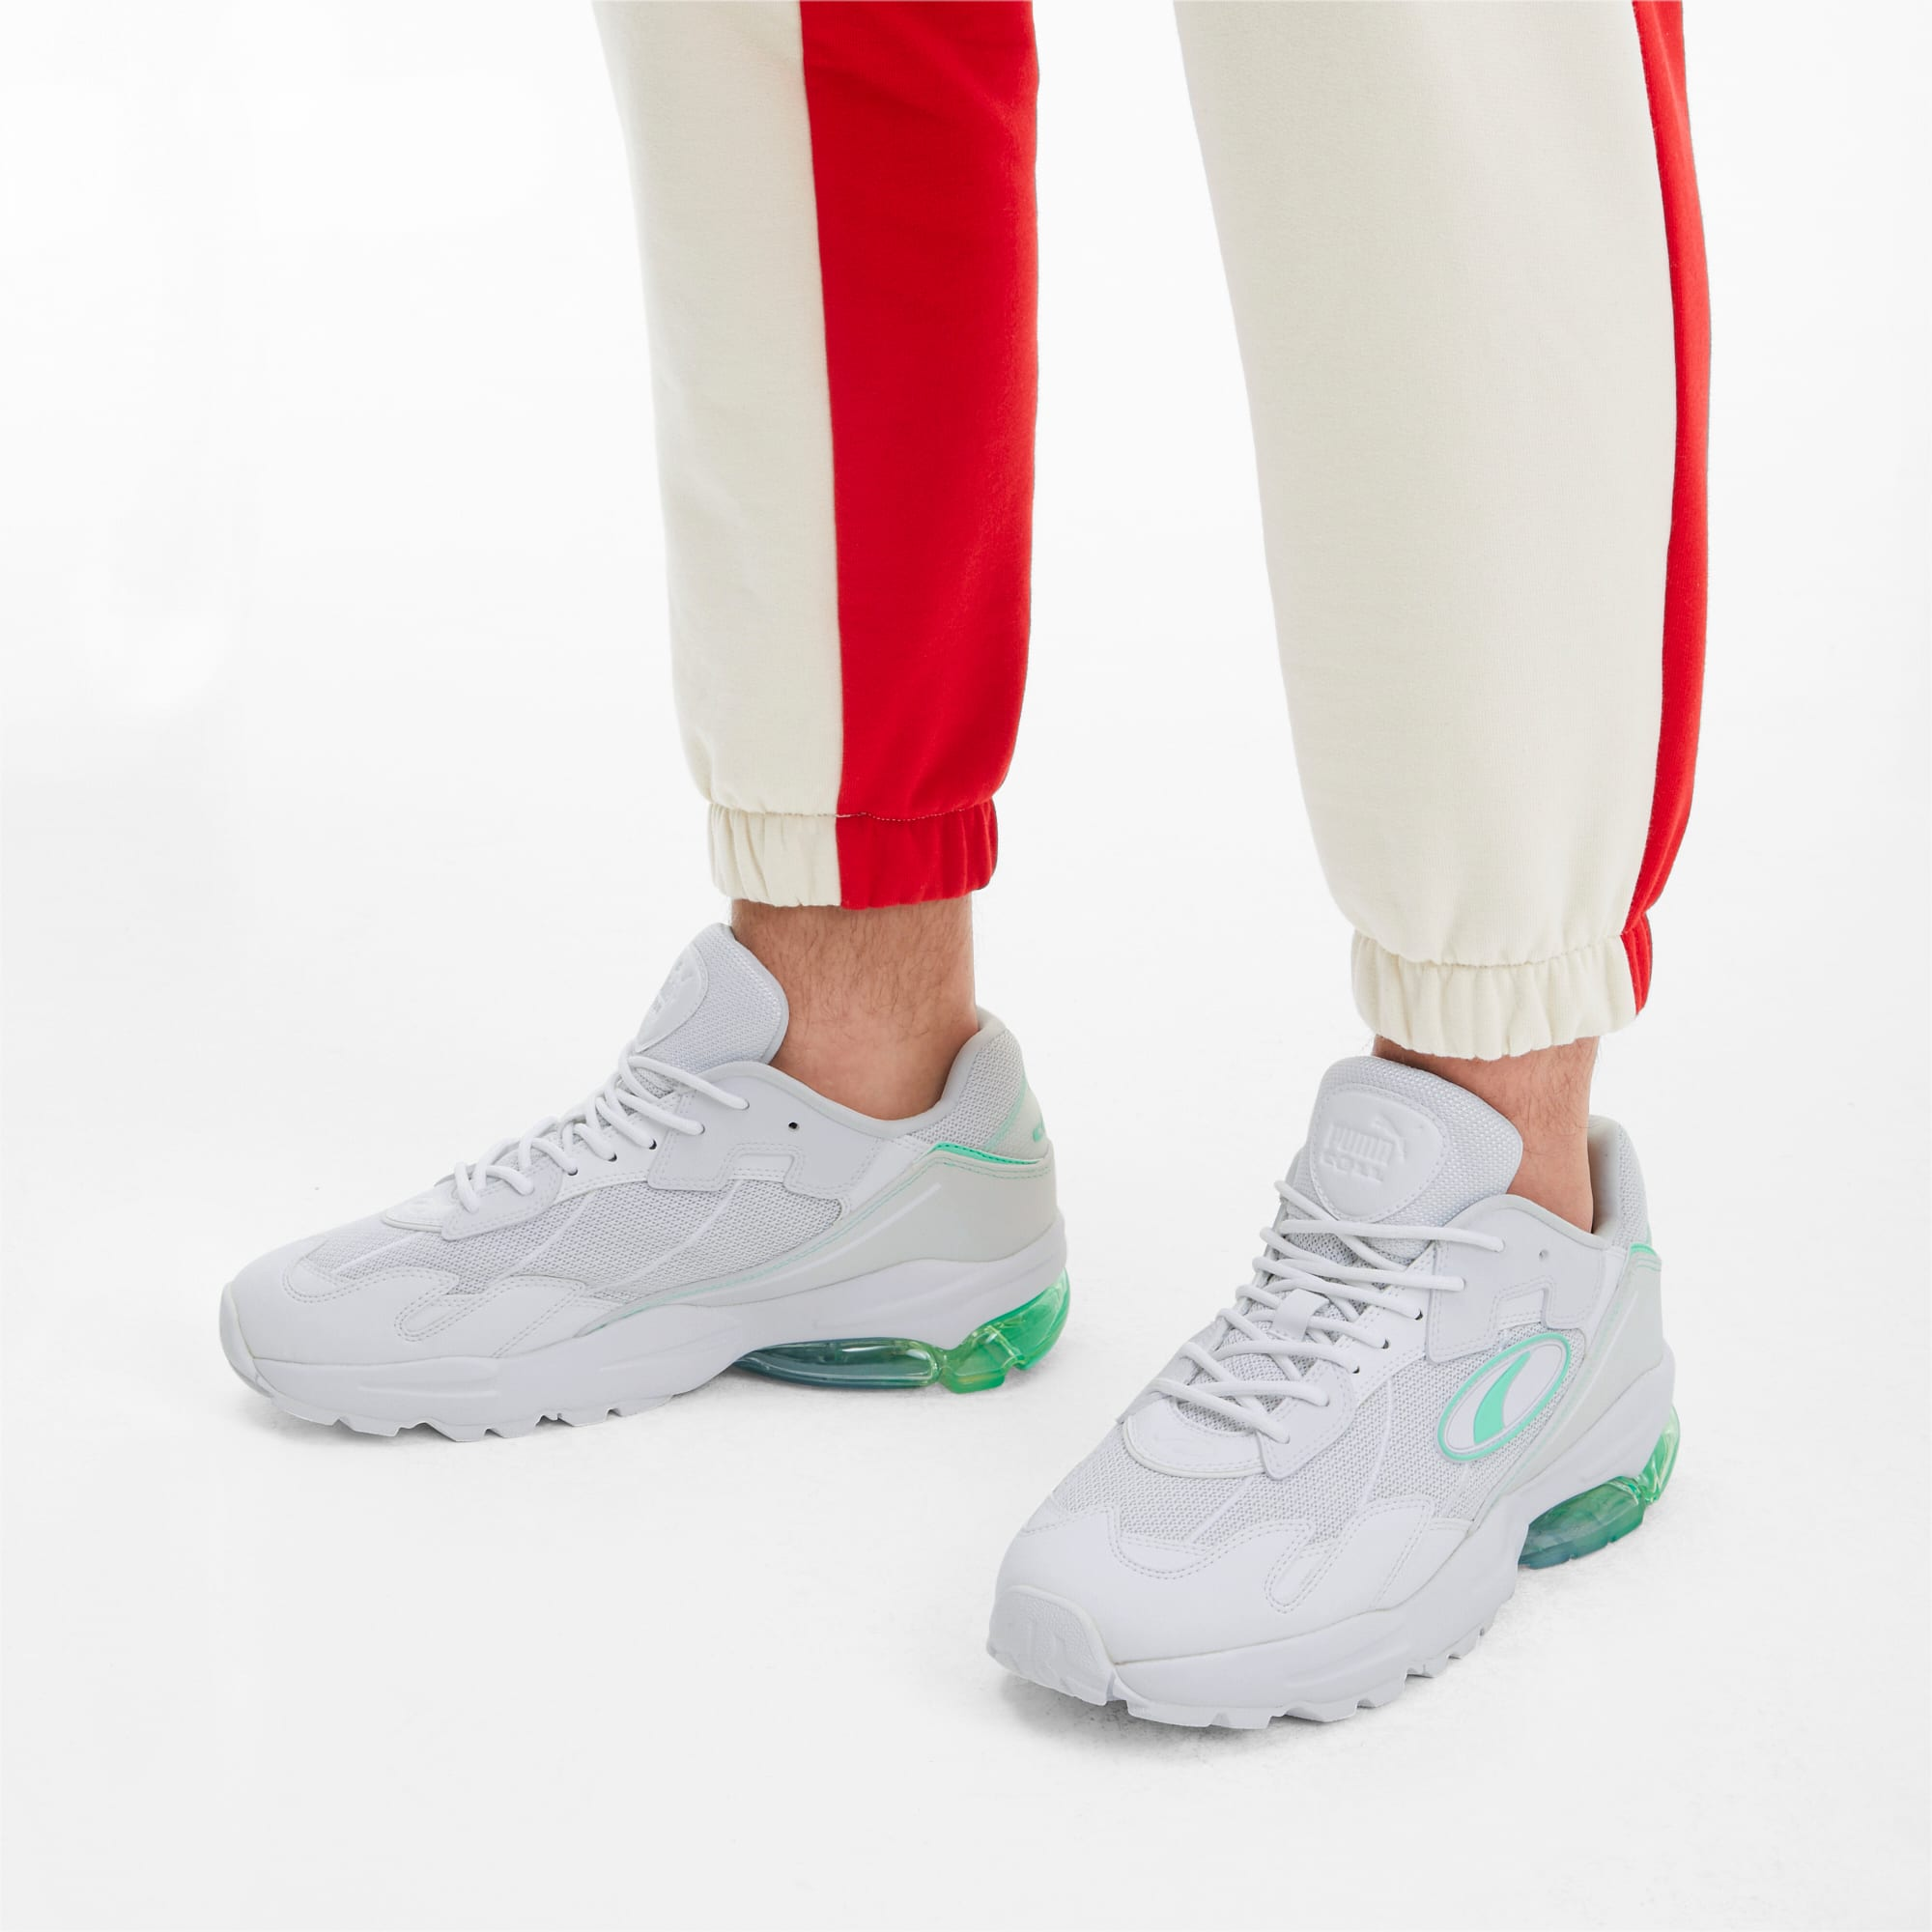 CELL Ultra Transparent Trainers